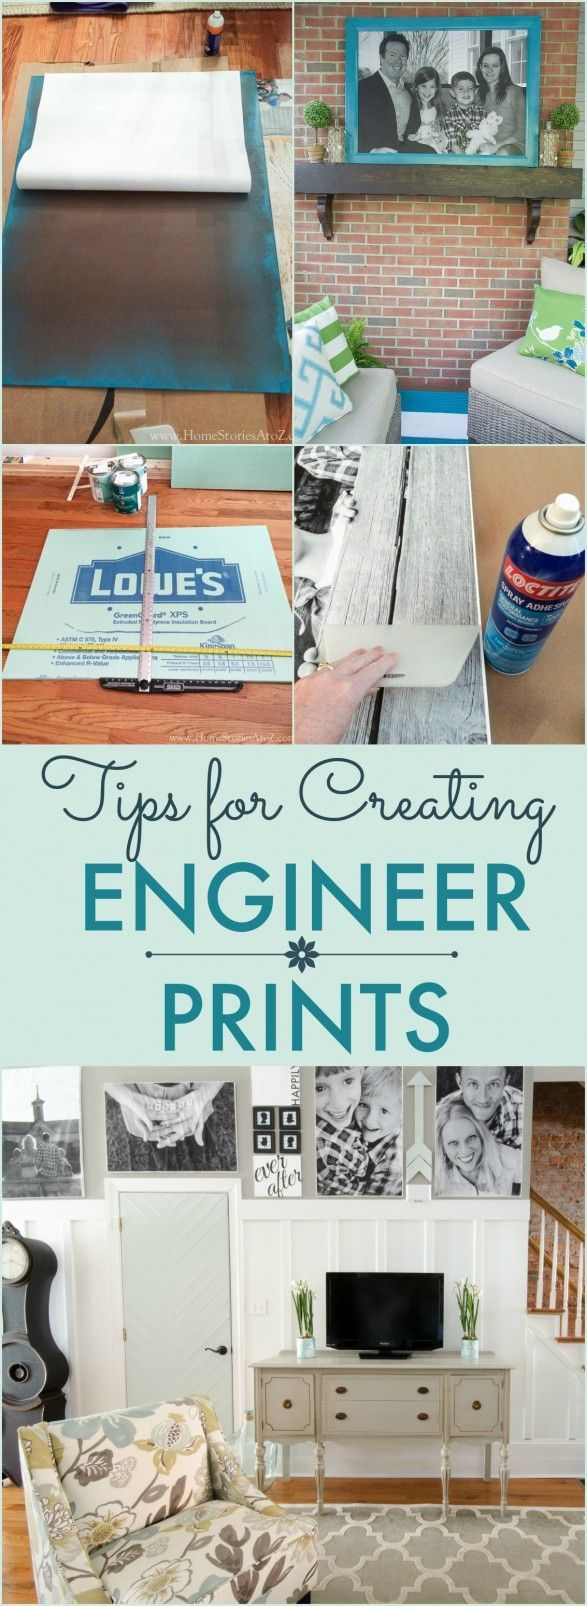 Poster design diy - Best 25 Engineer Prints Ideas On Pinterest Staples Engineer Prints Large Photo Prints And Large Photos